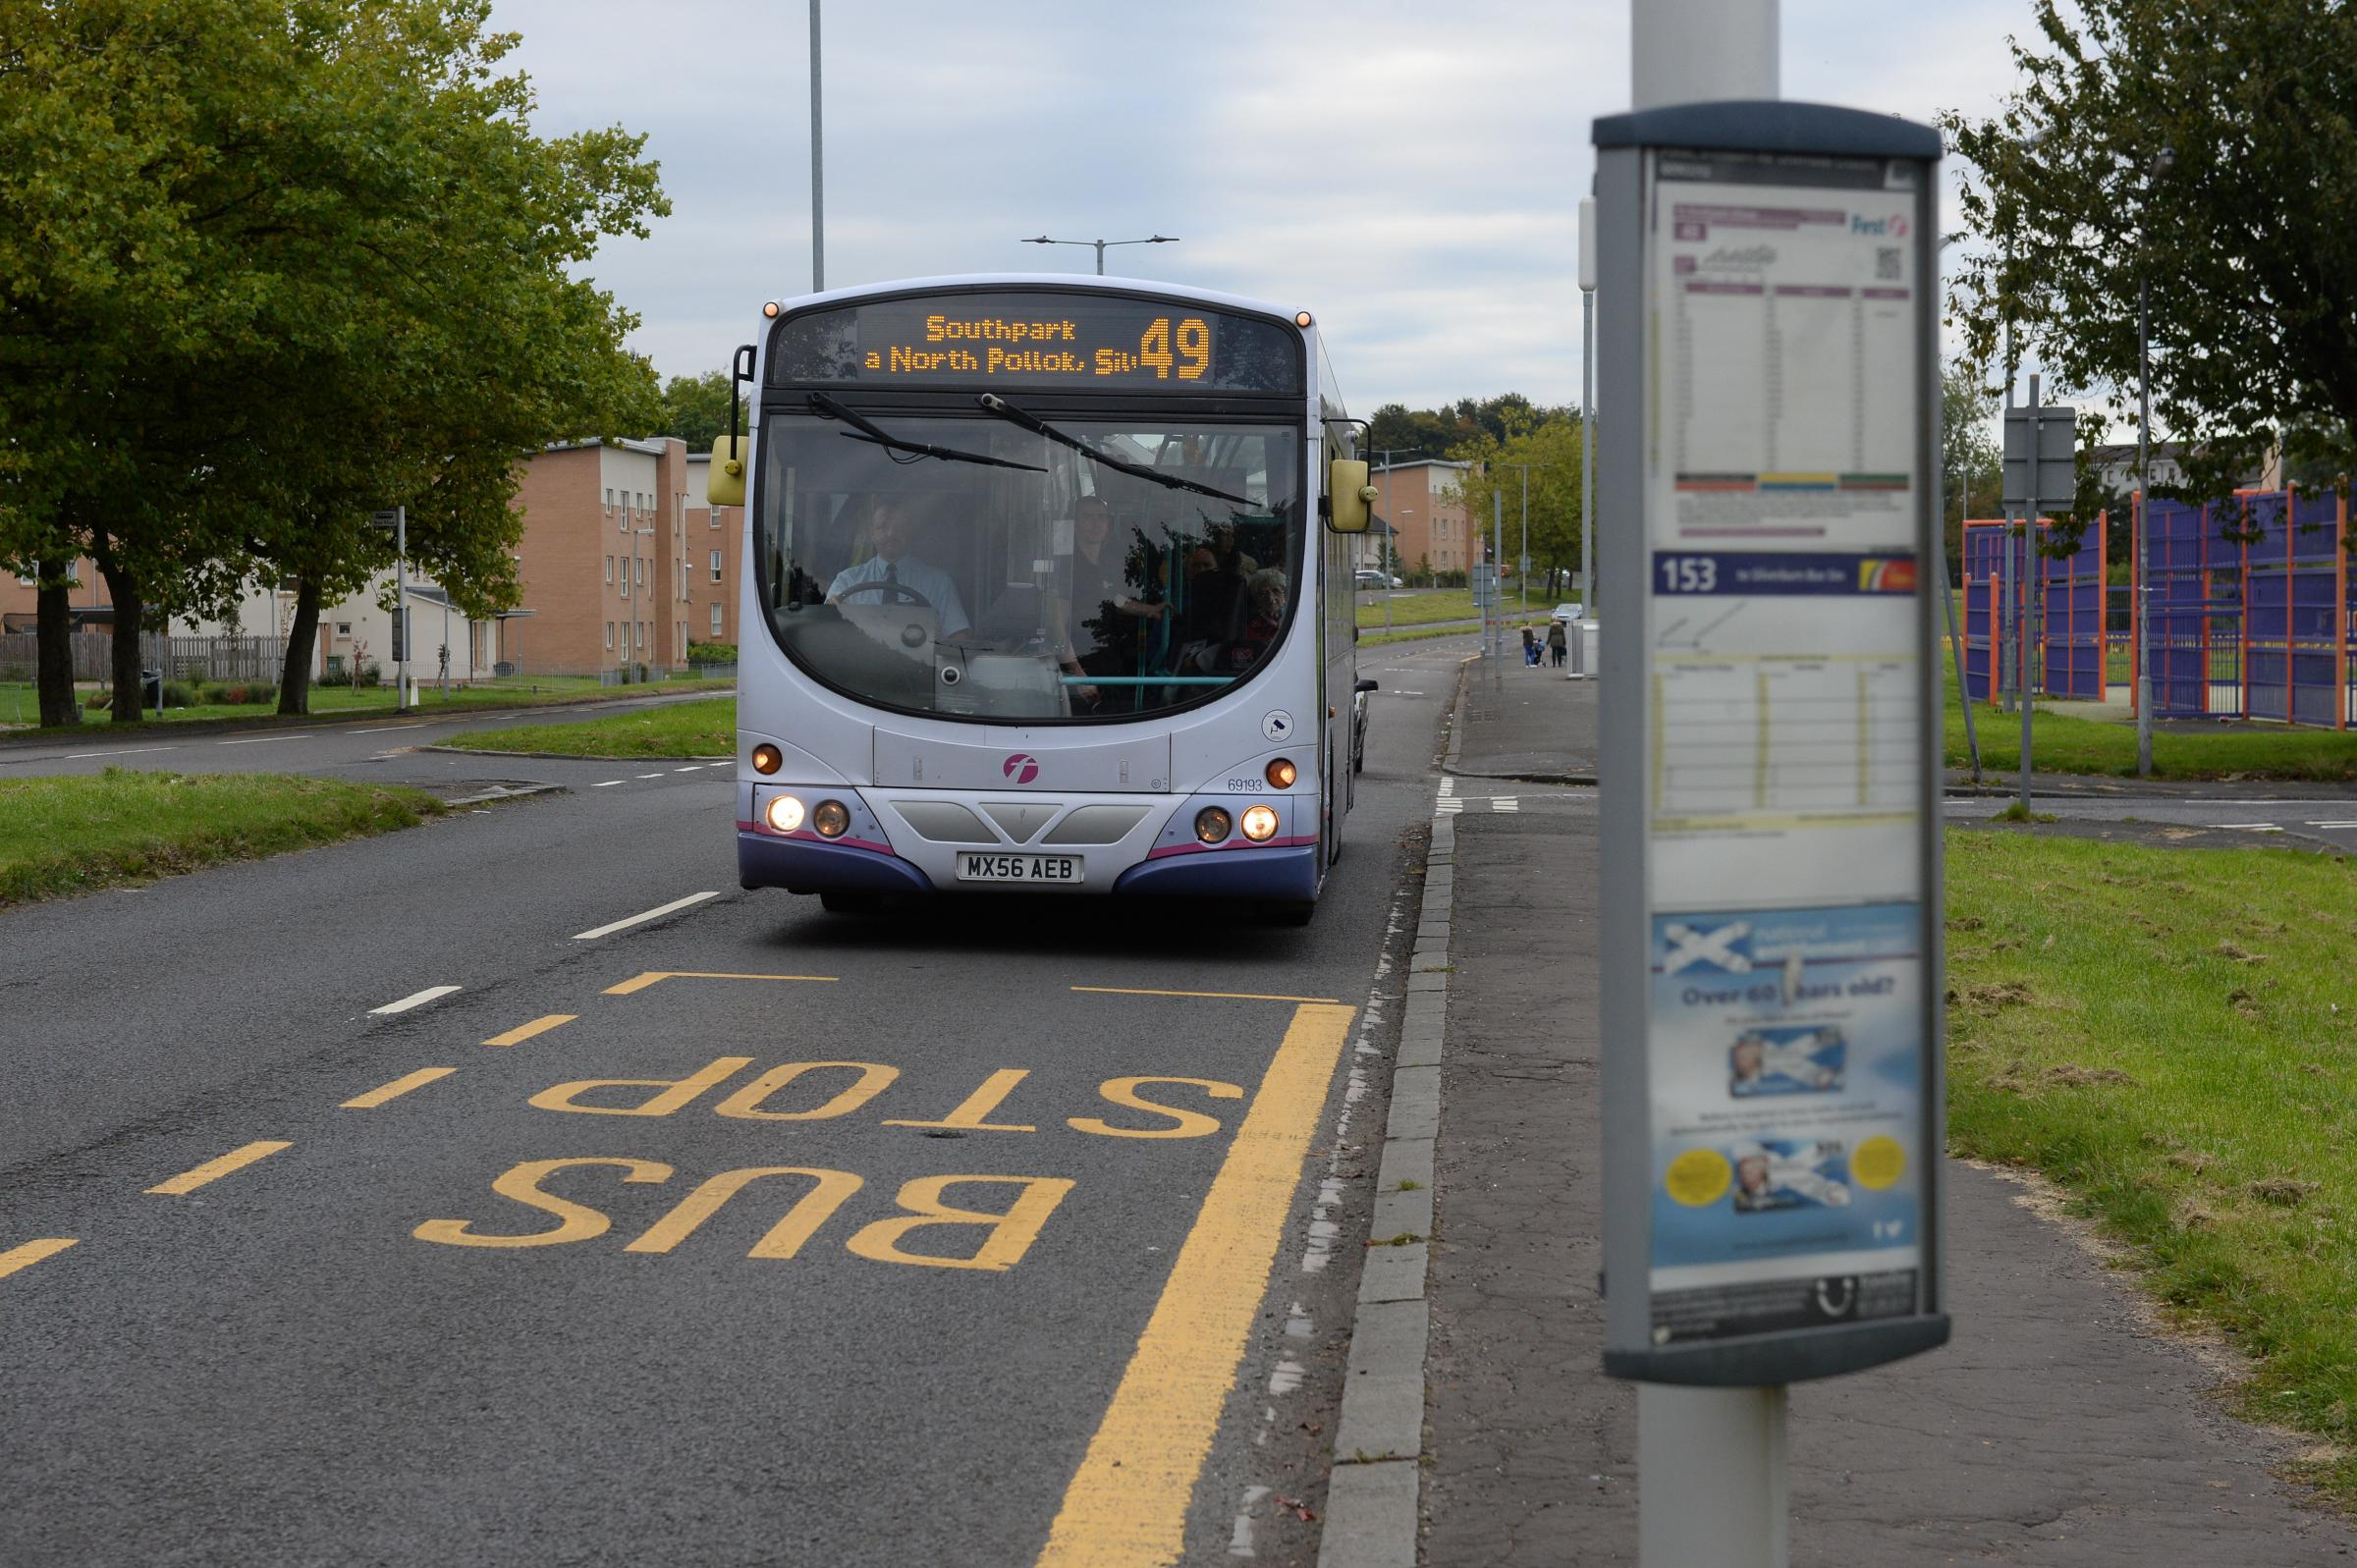 The No. 49 bus. Picture credit: Kirsty Anderson/ Herald and Times